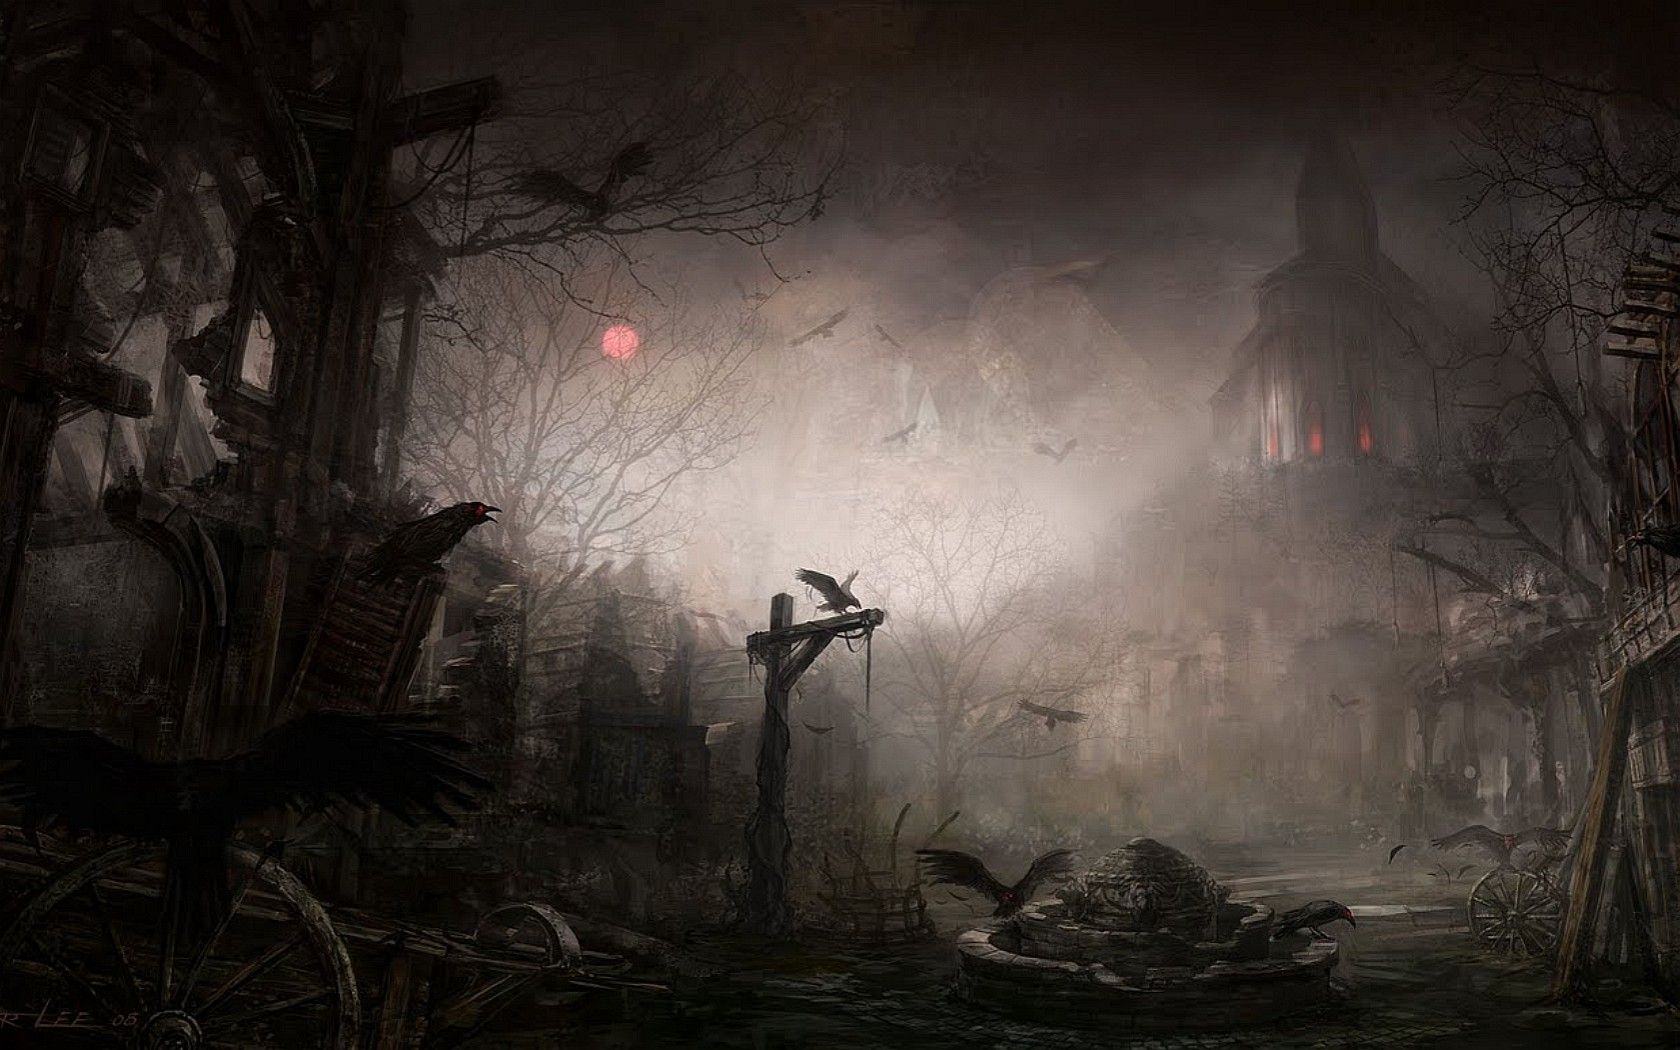 Dark Fantasy Art Wallpaper - WallpaperSafari